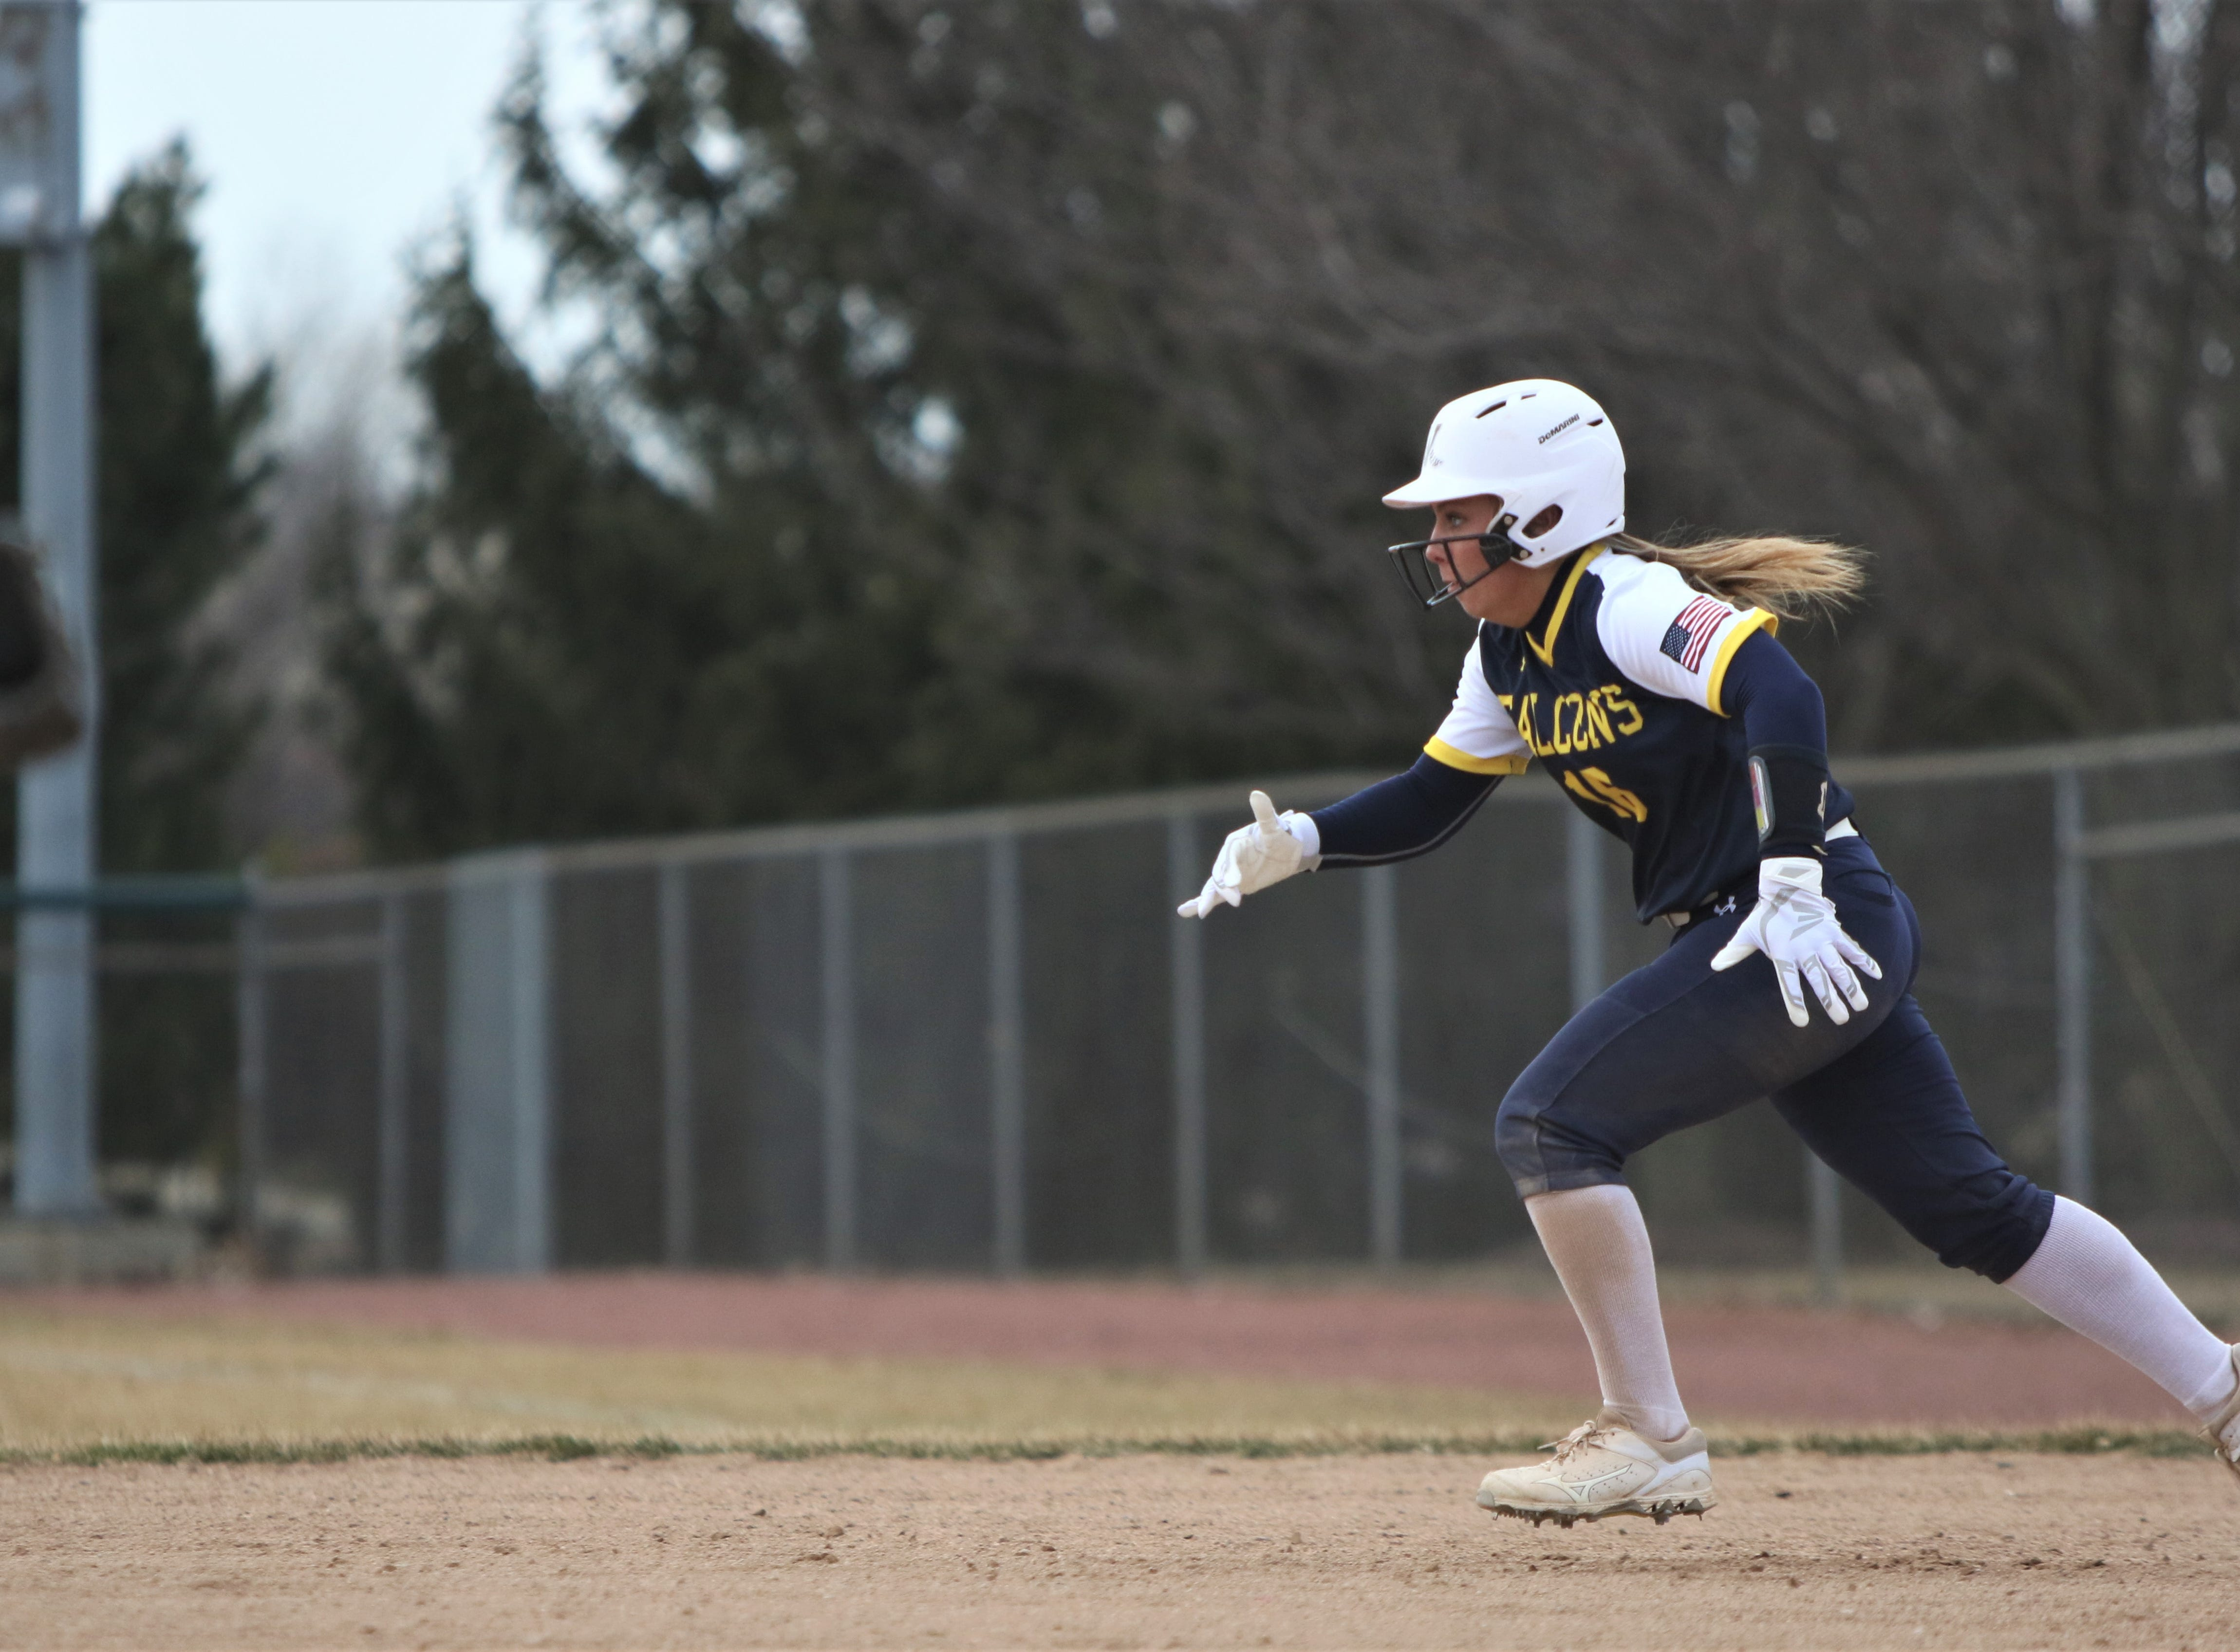 Whitnall senior Haley Wynn takes off toward second base for a stolen base during a season-opening game against Greenfield on April 3, 2019.